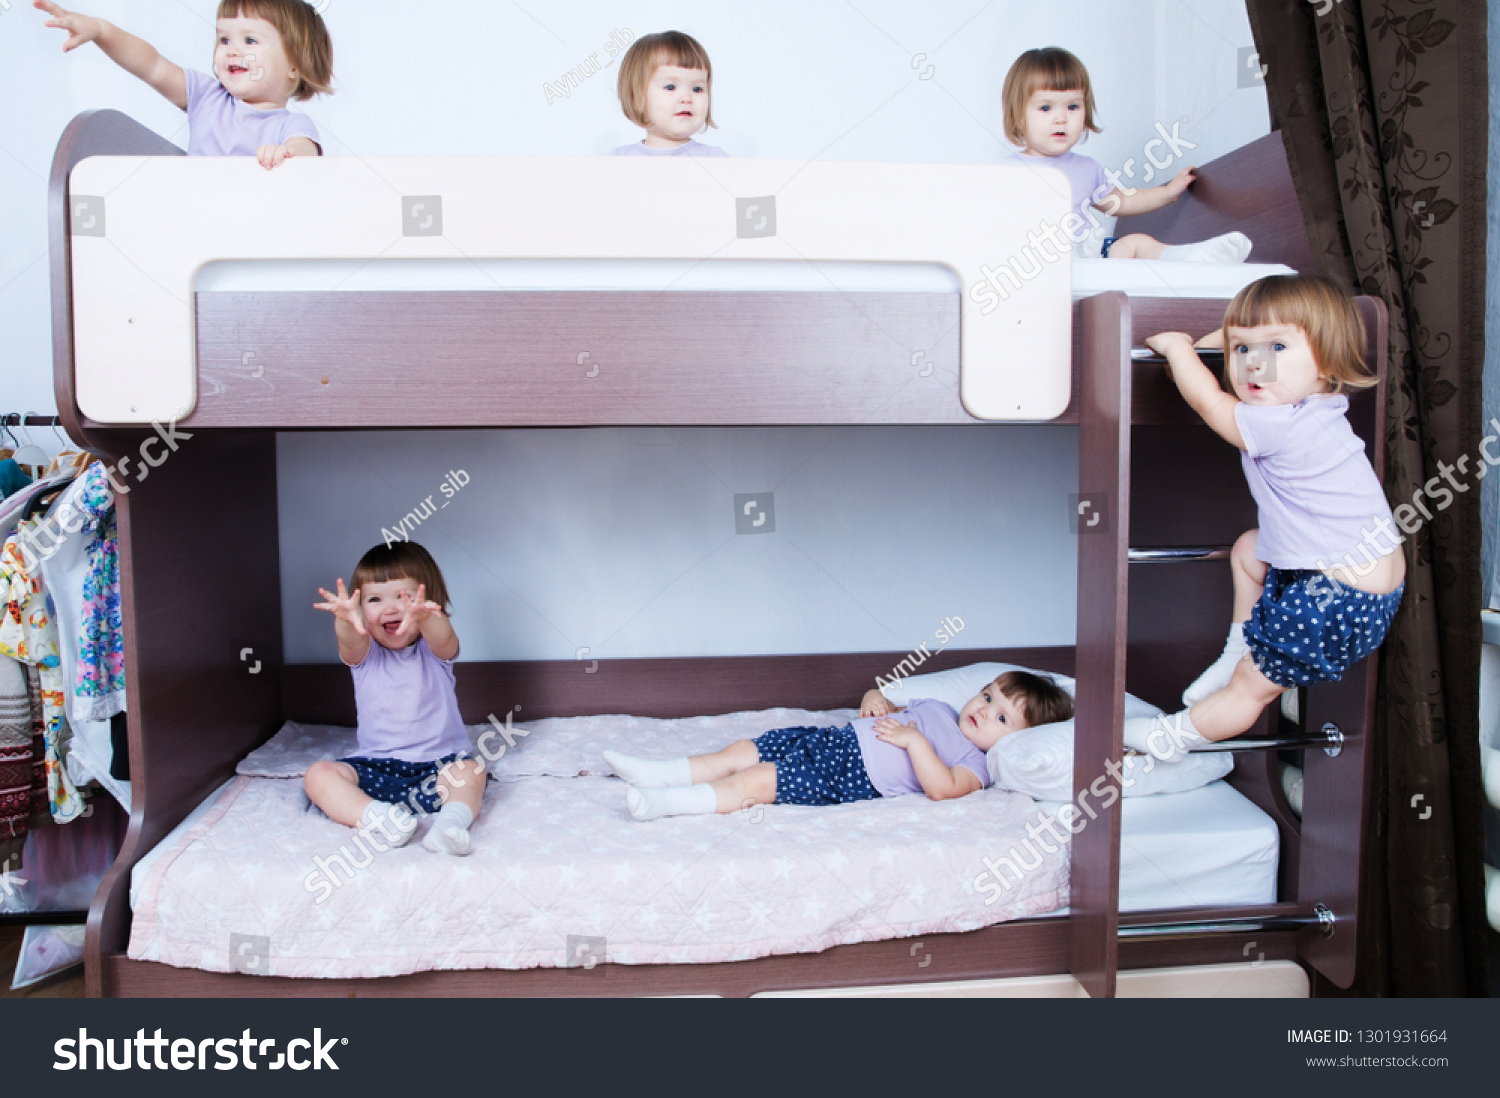 Bunk Bed Children Many Clone Baby Stock Photo Edit Now 1301931664